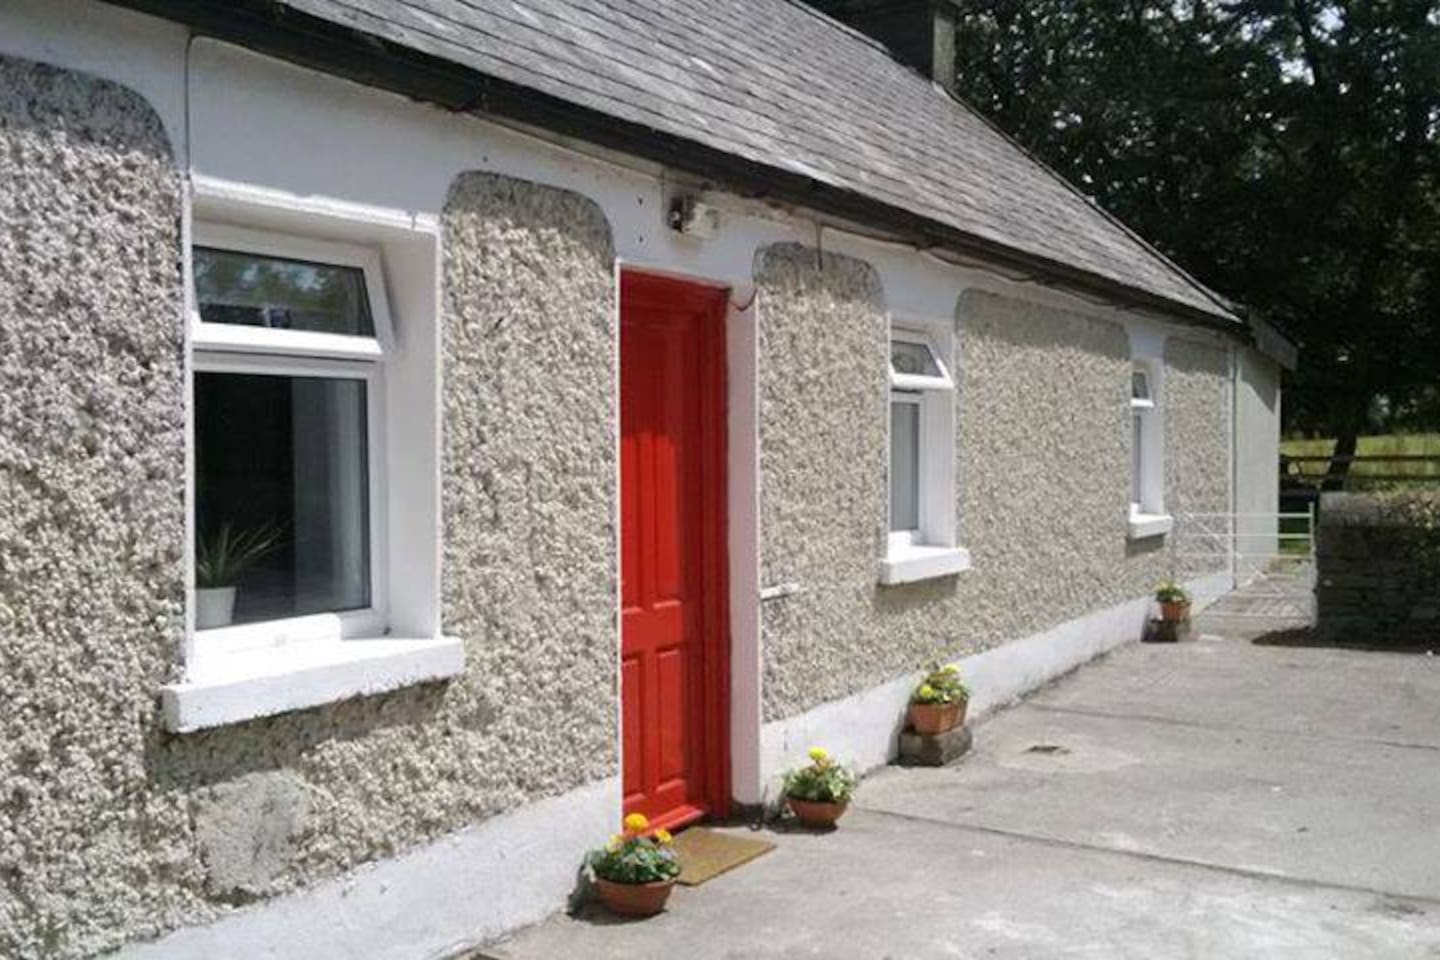 Beautiful sunny day in Carrigeen Cottage